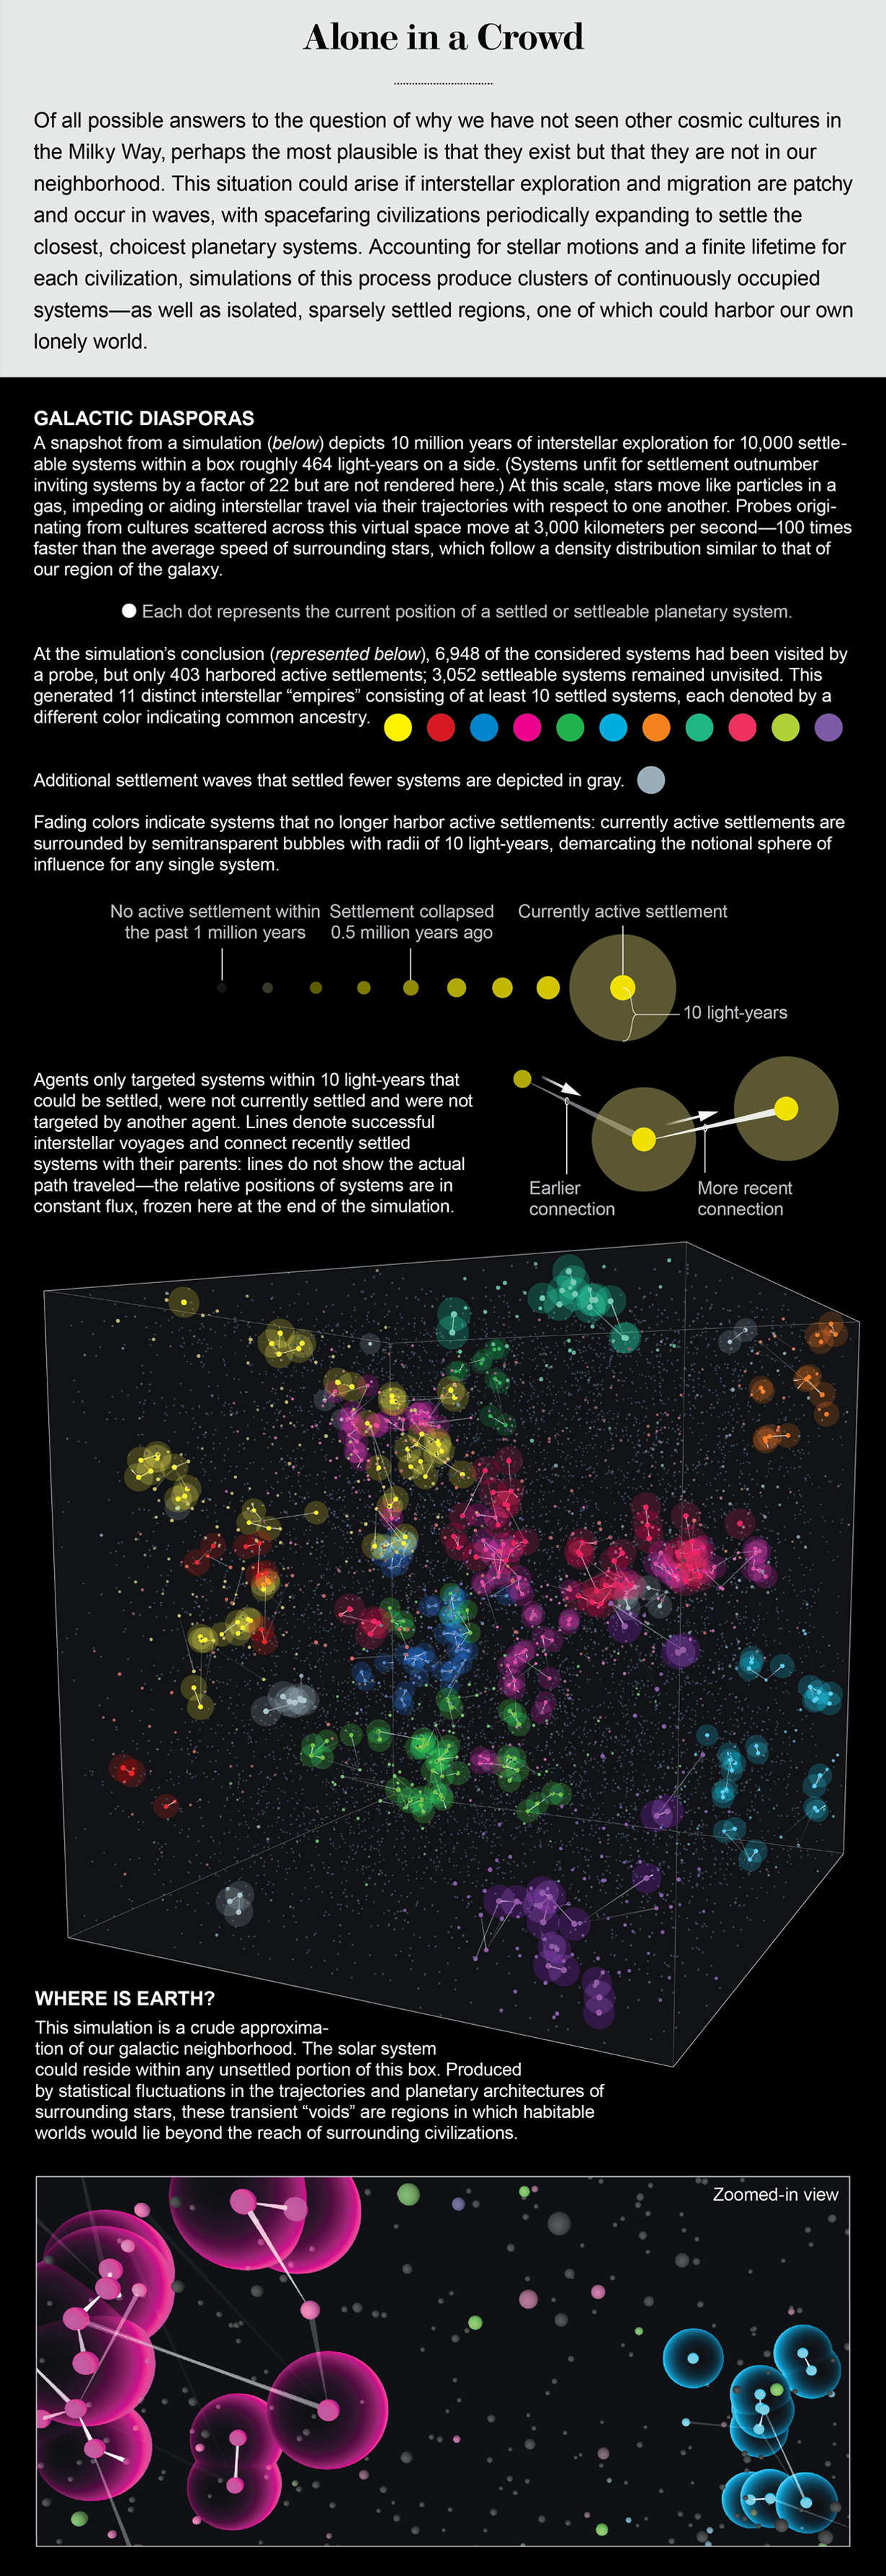 Dataviz of an interstellar exploration simulation shows clusters of continuously occupied systems—as well as isolated, sparsely settled regions